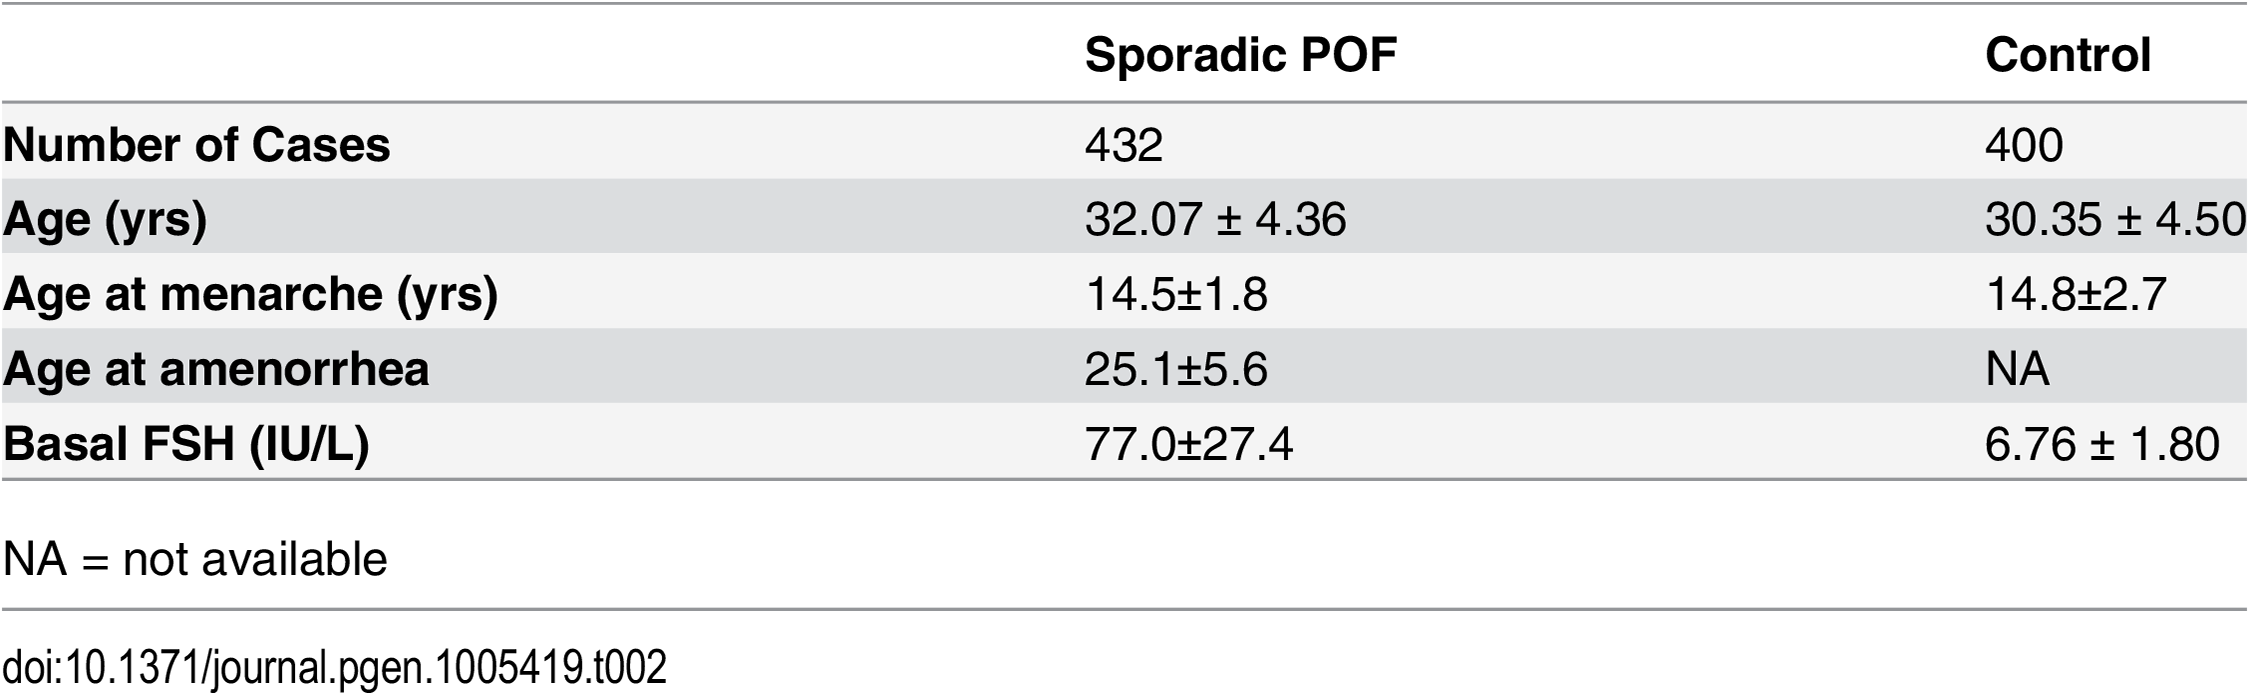 Clinical features of sporadic patients with POF and matched controls.